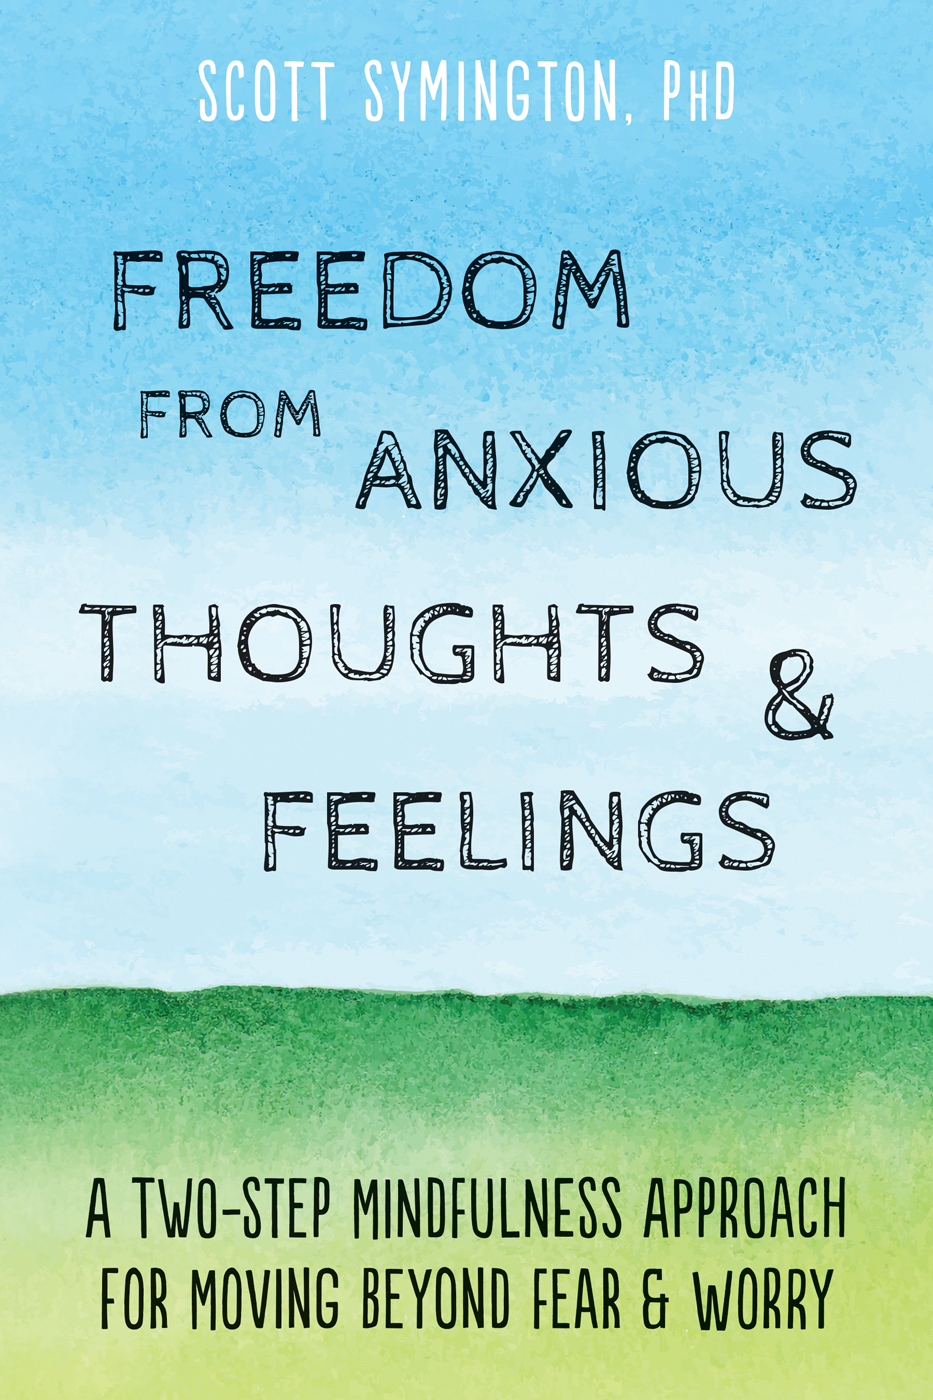 Freedom from Anxious Thoughts and Feelings - A Two-Step Mindfulness Approach for Moving Beyond Fear and Worry